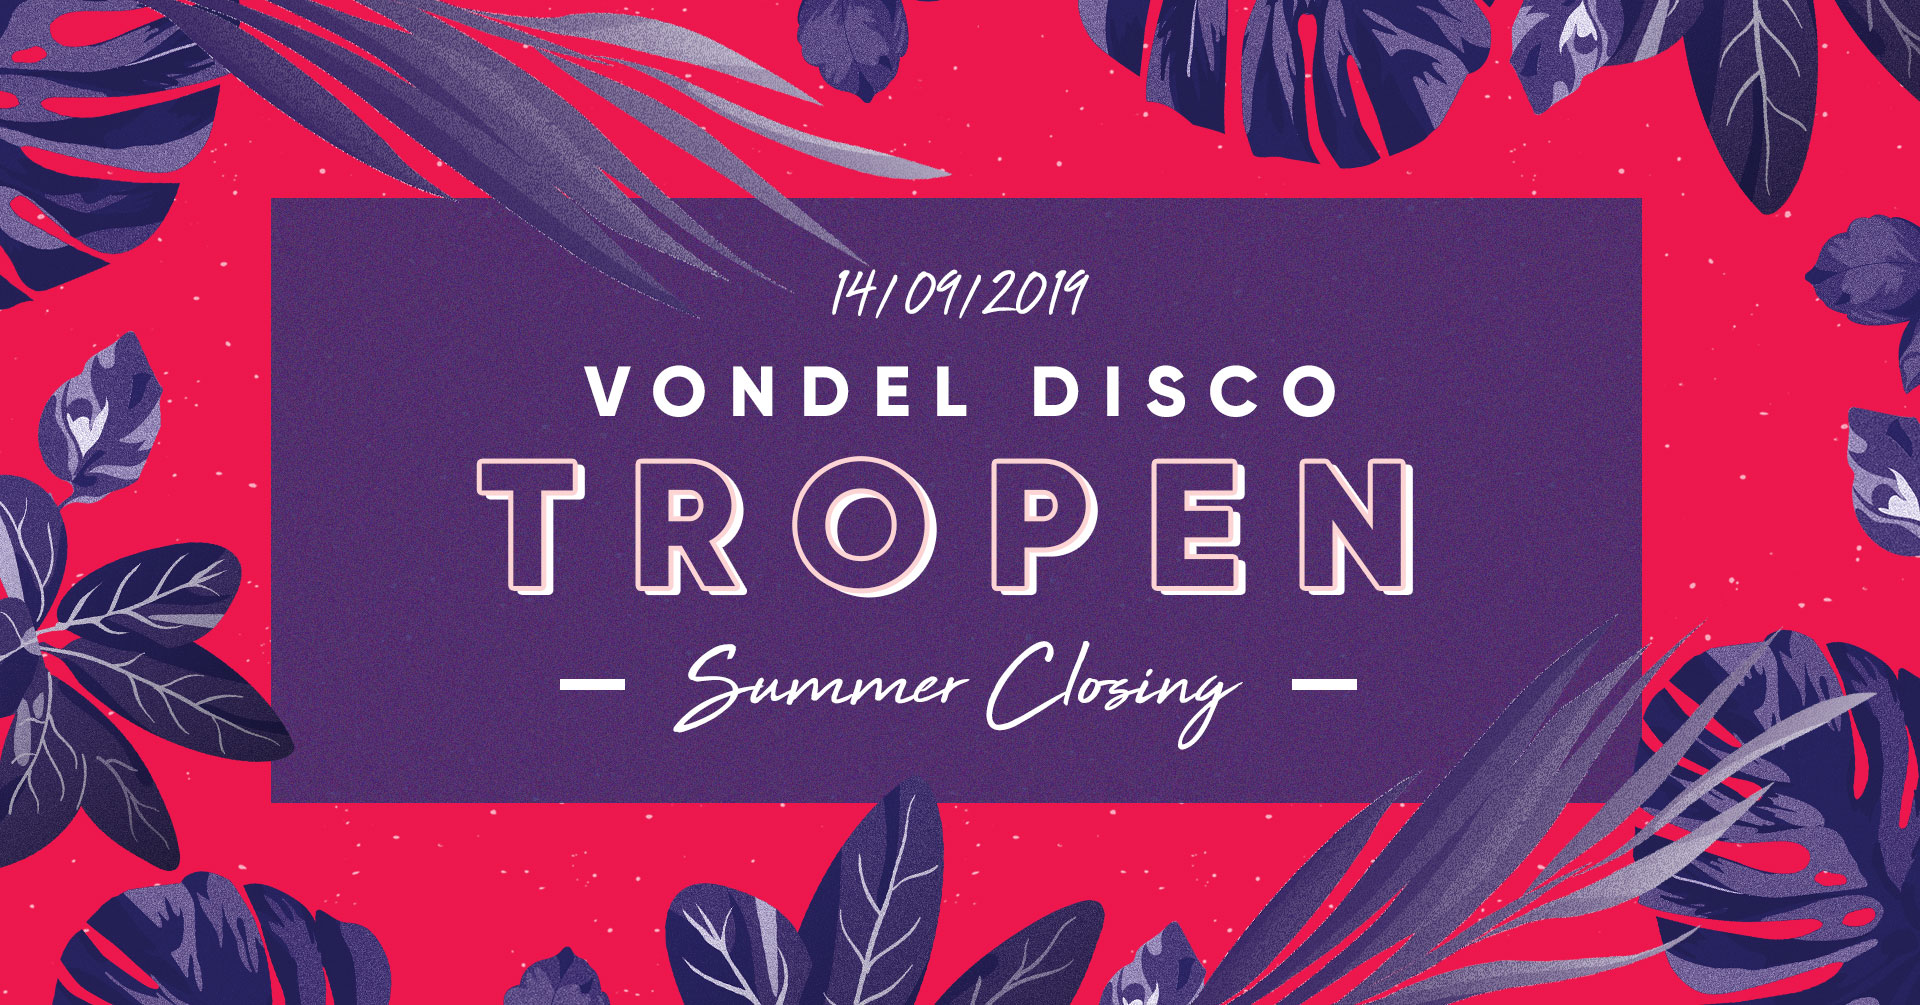 Vondel Disco Tropen 14 september.jpg